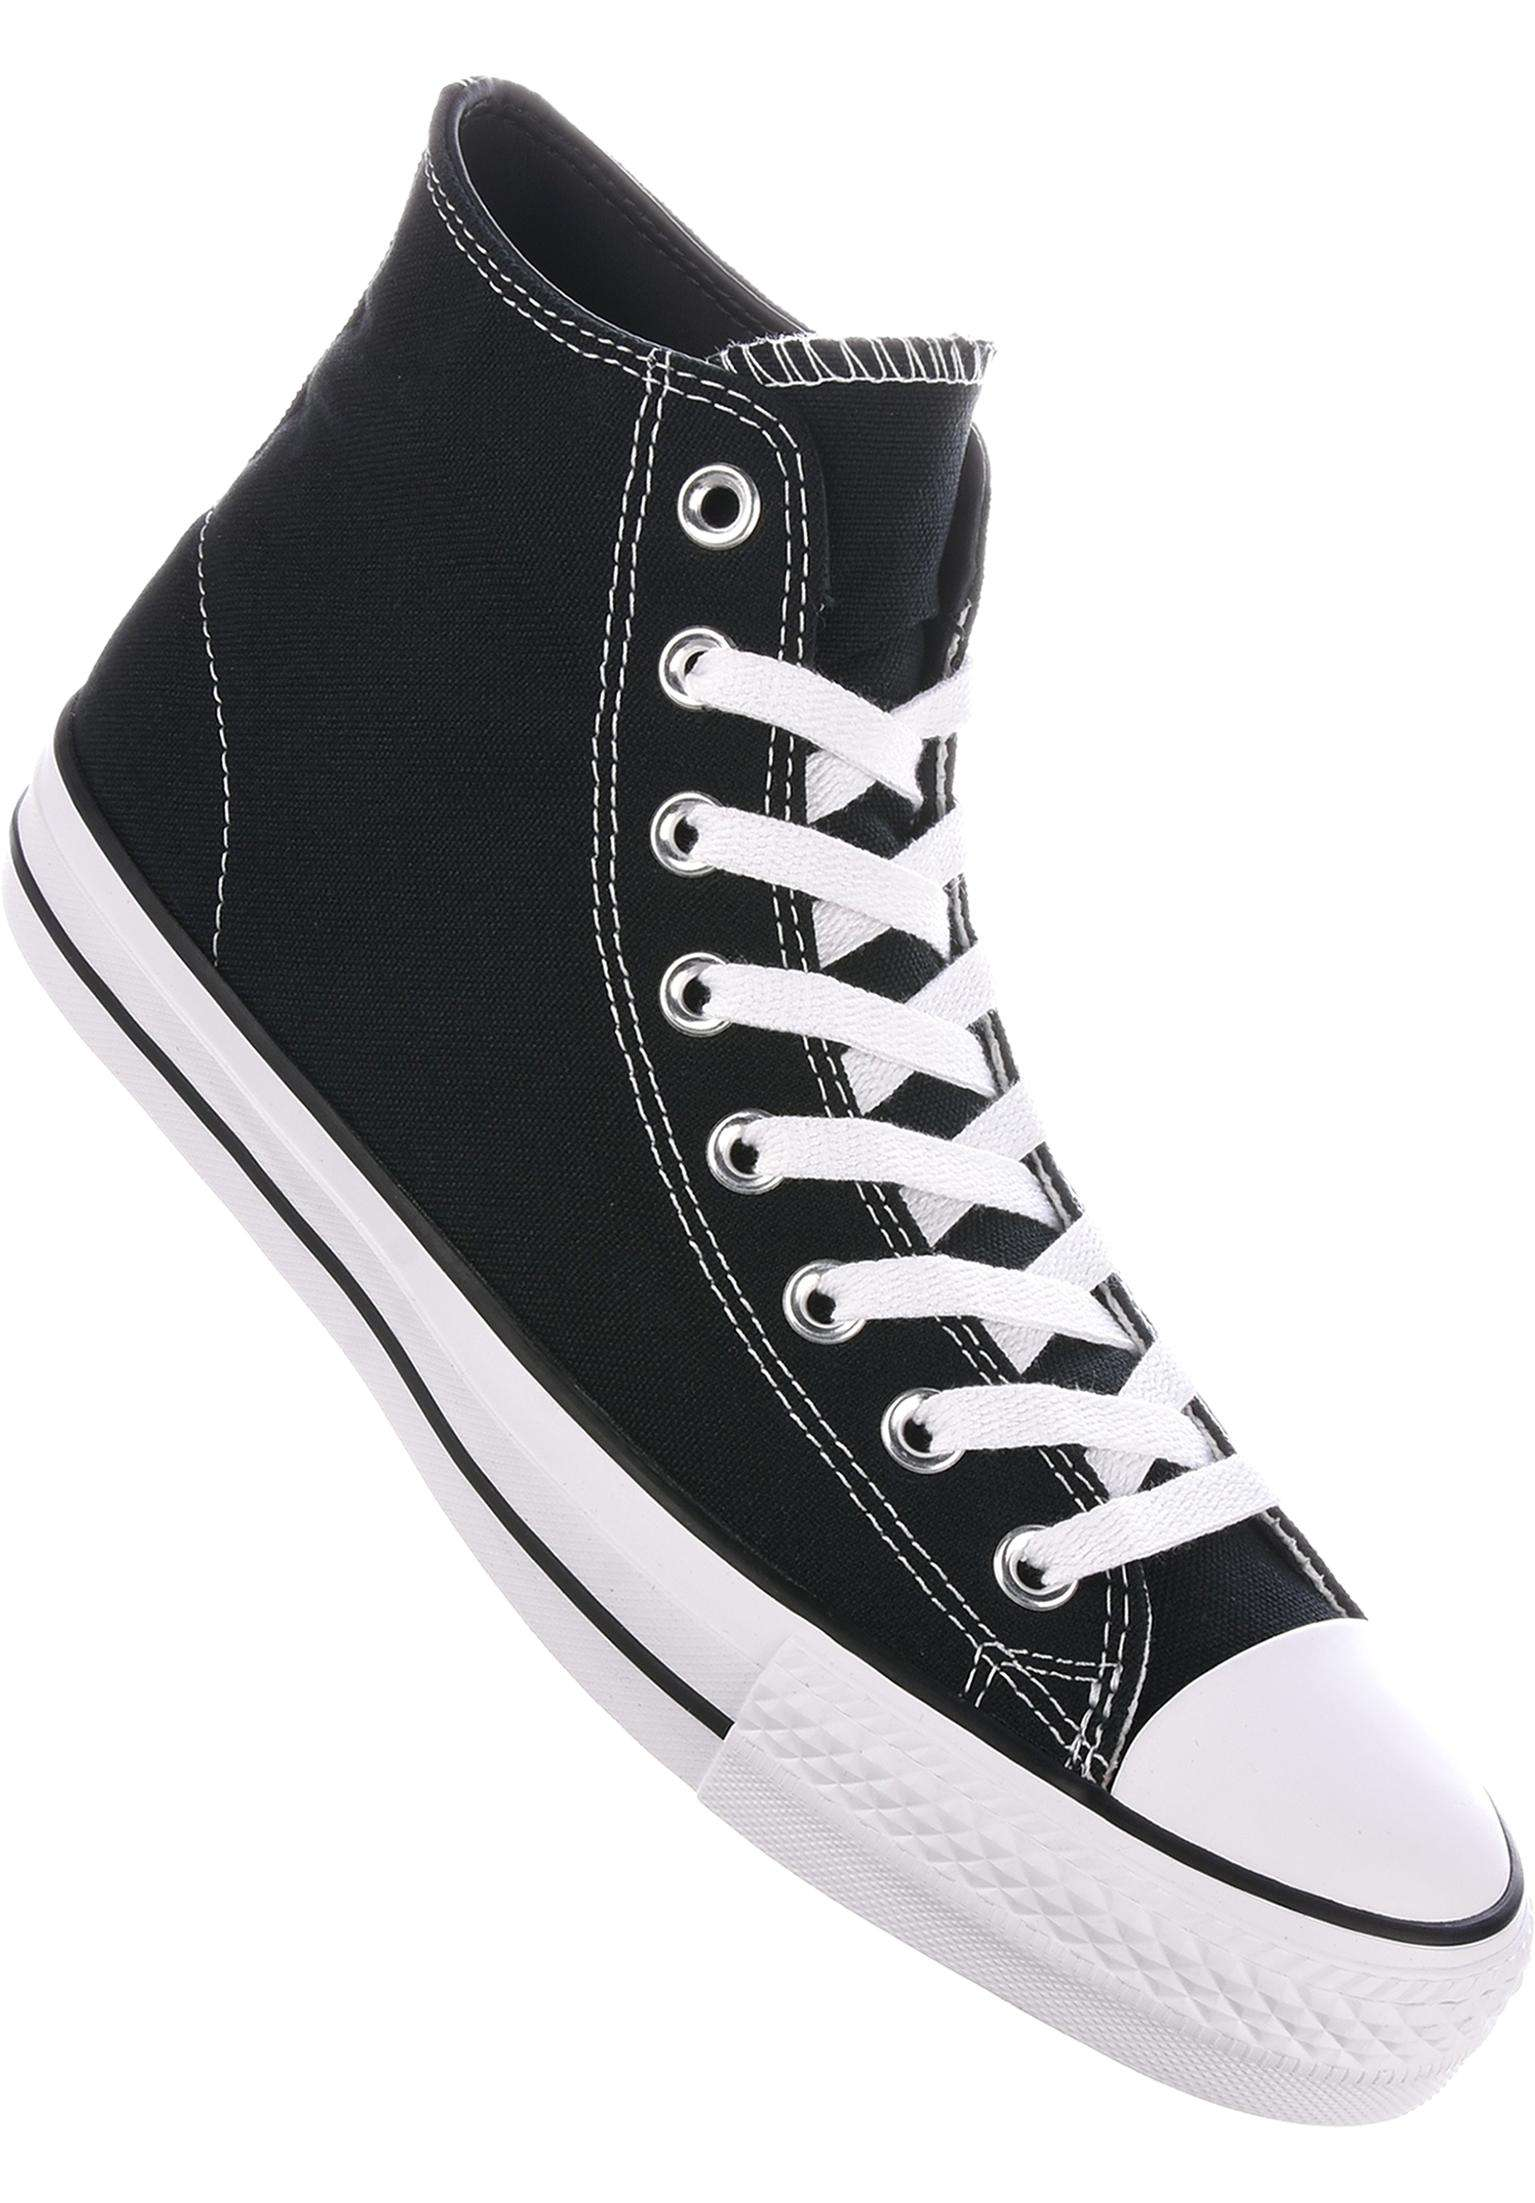 bce772c8ed42 CTAS Pro Hi Converse CONS All Shoes in black-black-white for Men